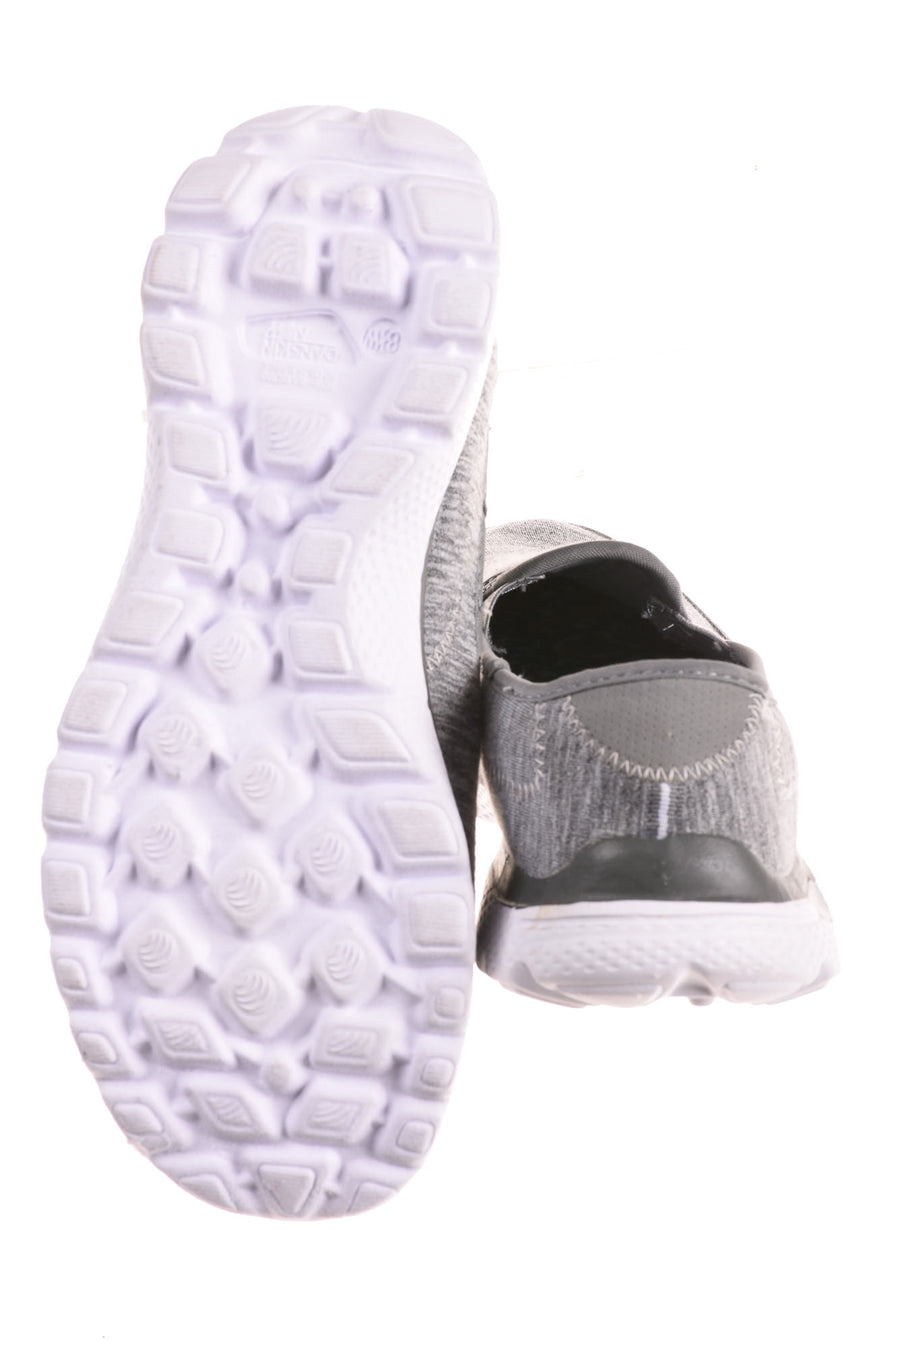 USED Danskin Now Women's Wide Shoes 8.5 W Gray